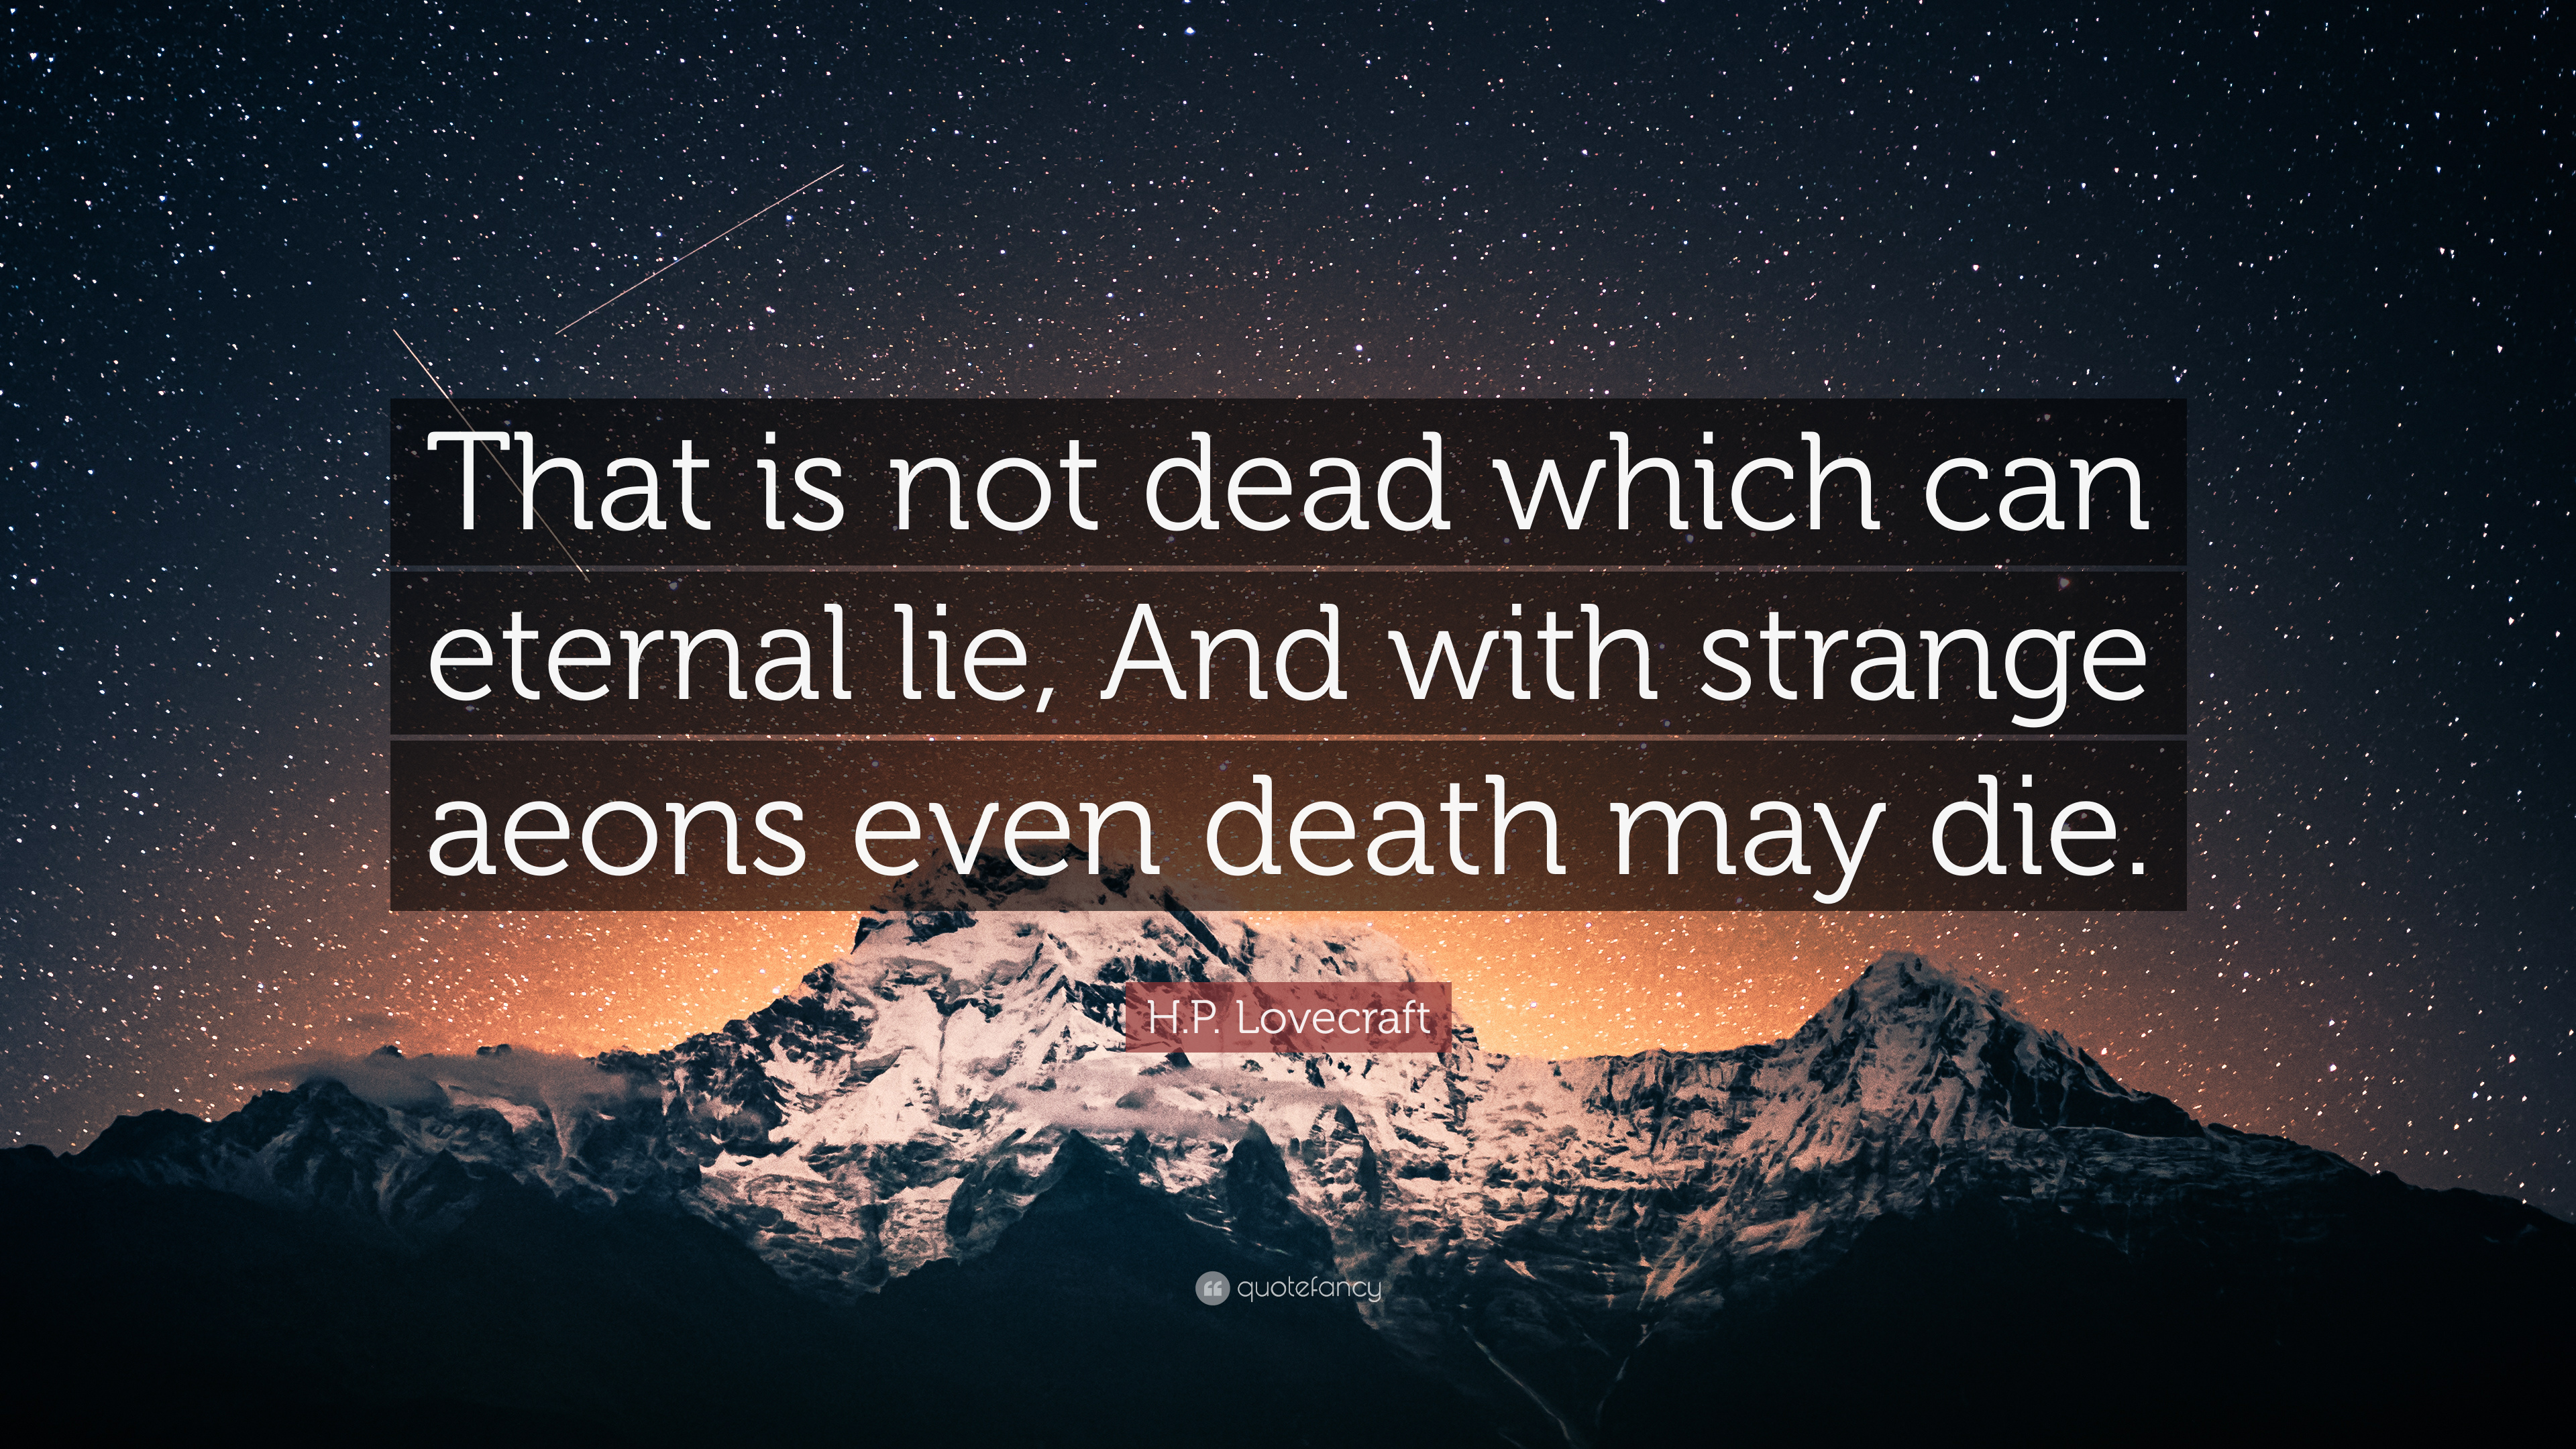 H.P. Lovecraft Quote: That is not dead which can eternal